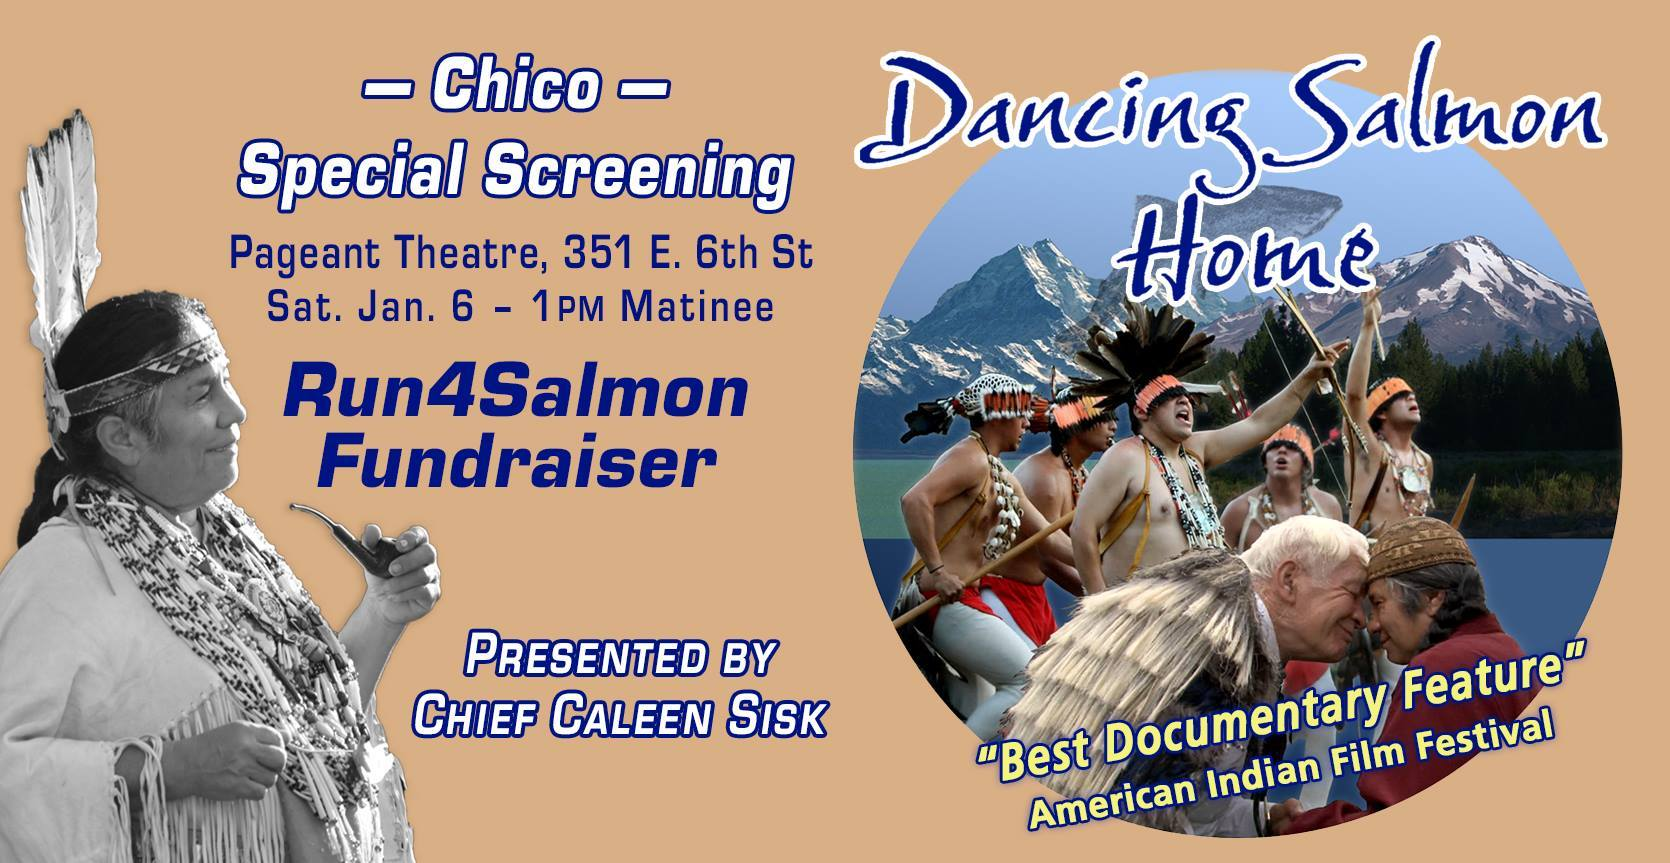 Dancing Salmon Home Documentary showing 1-3 PM @ Chico | California | United States